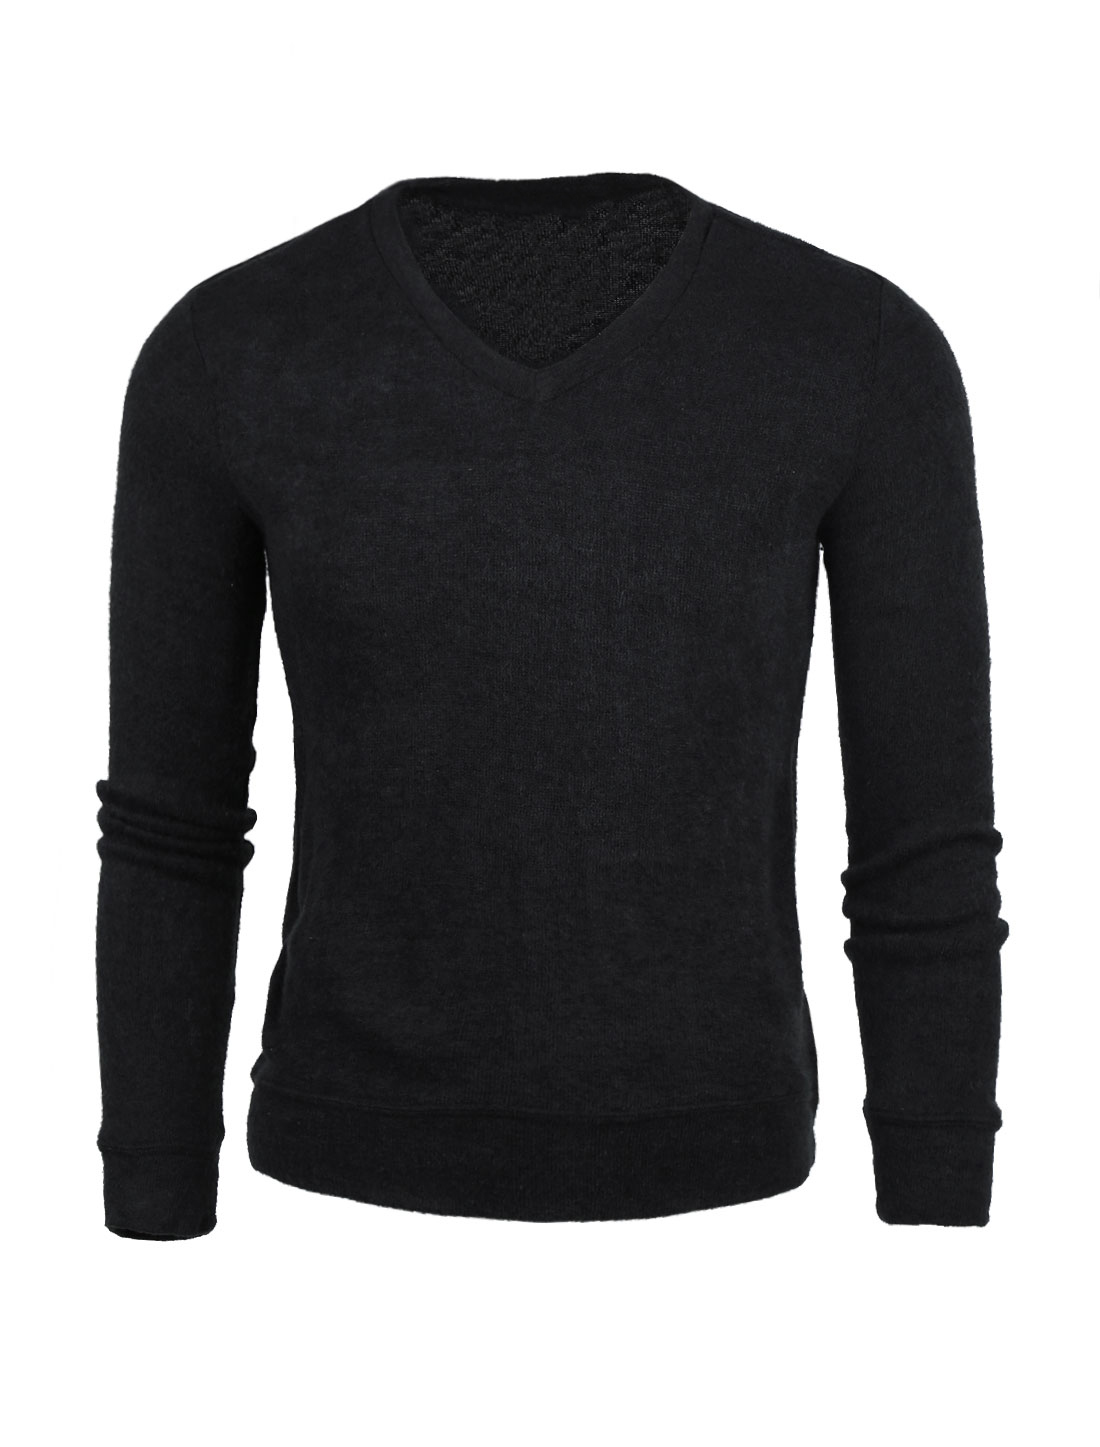 Mens Black Stylish V Neck Long Sleeve Solid Color Casual Sweater S